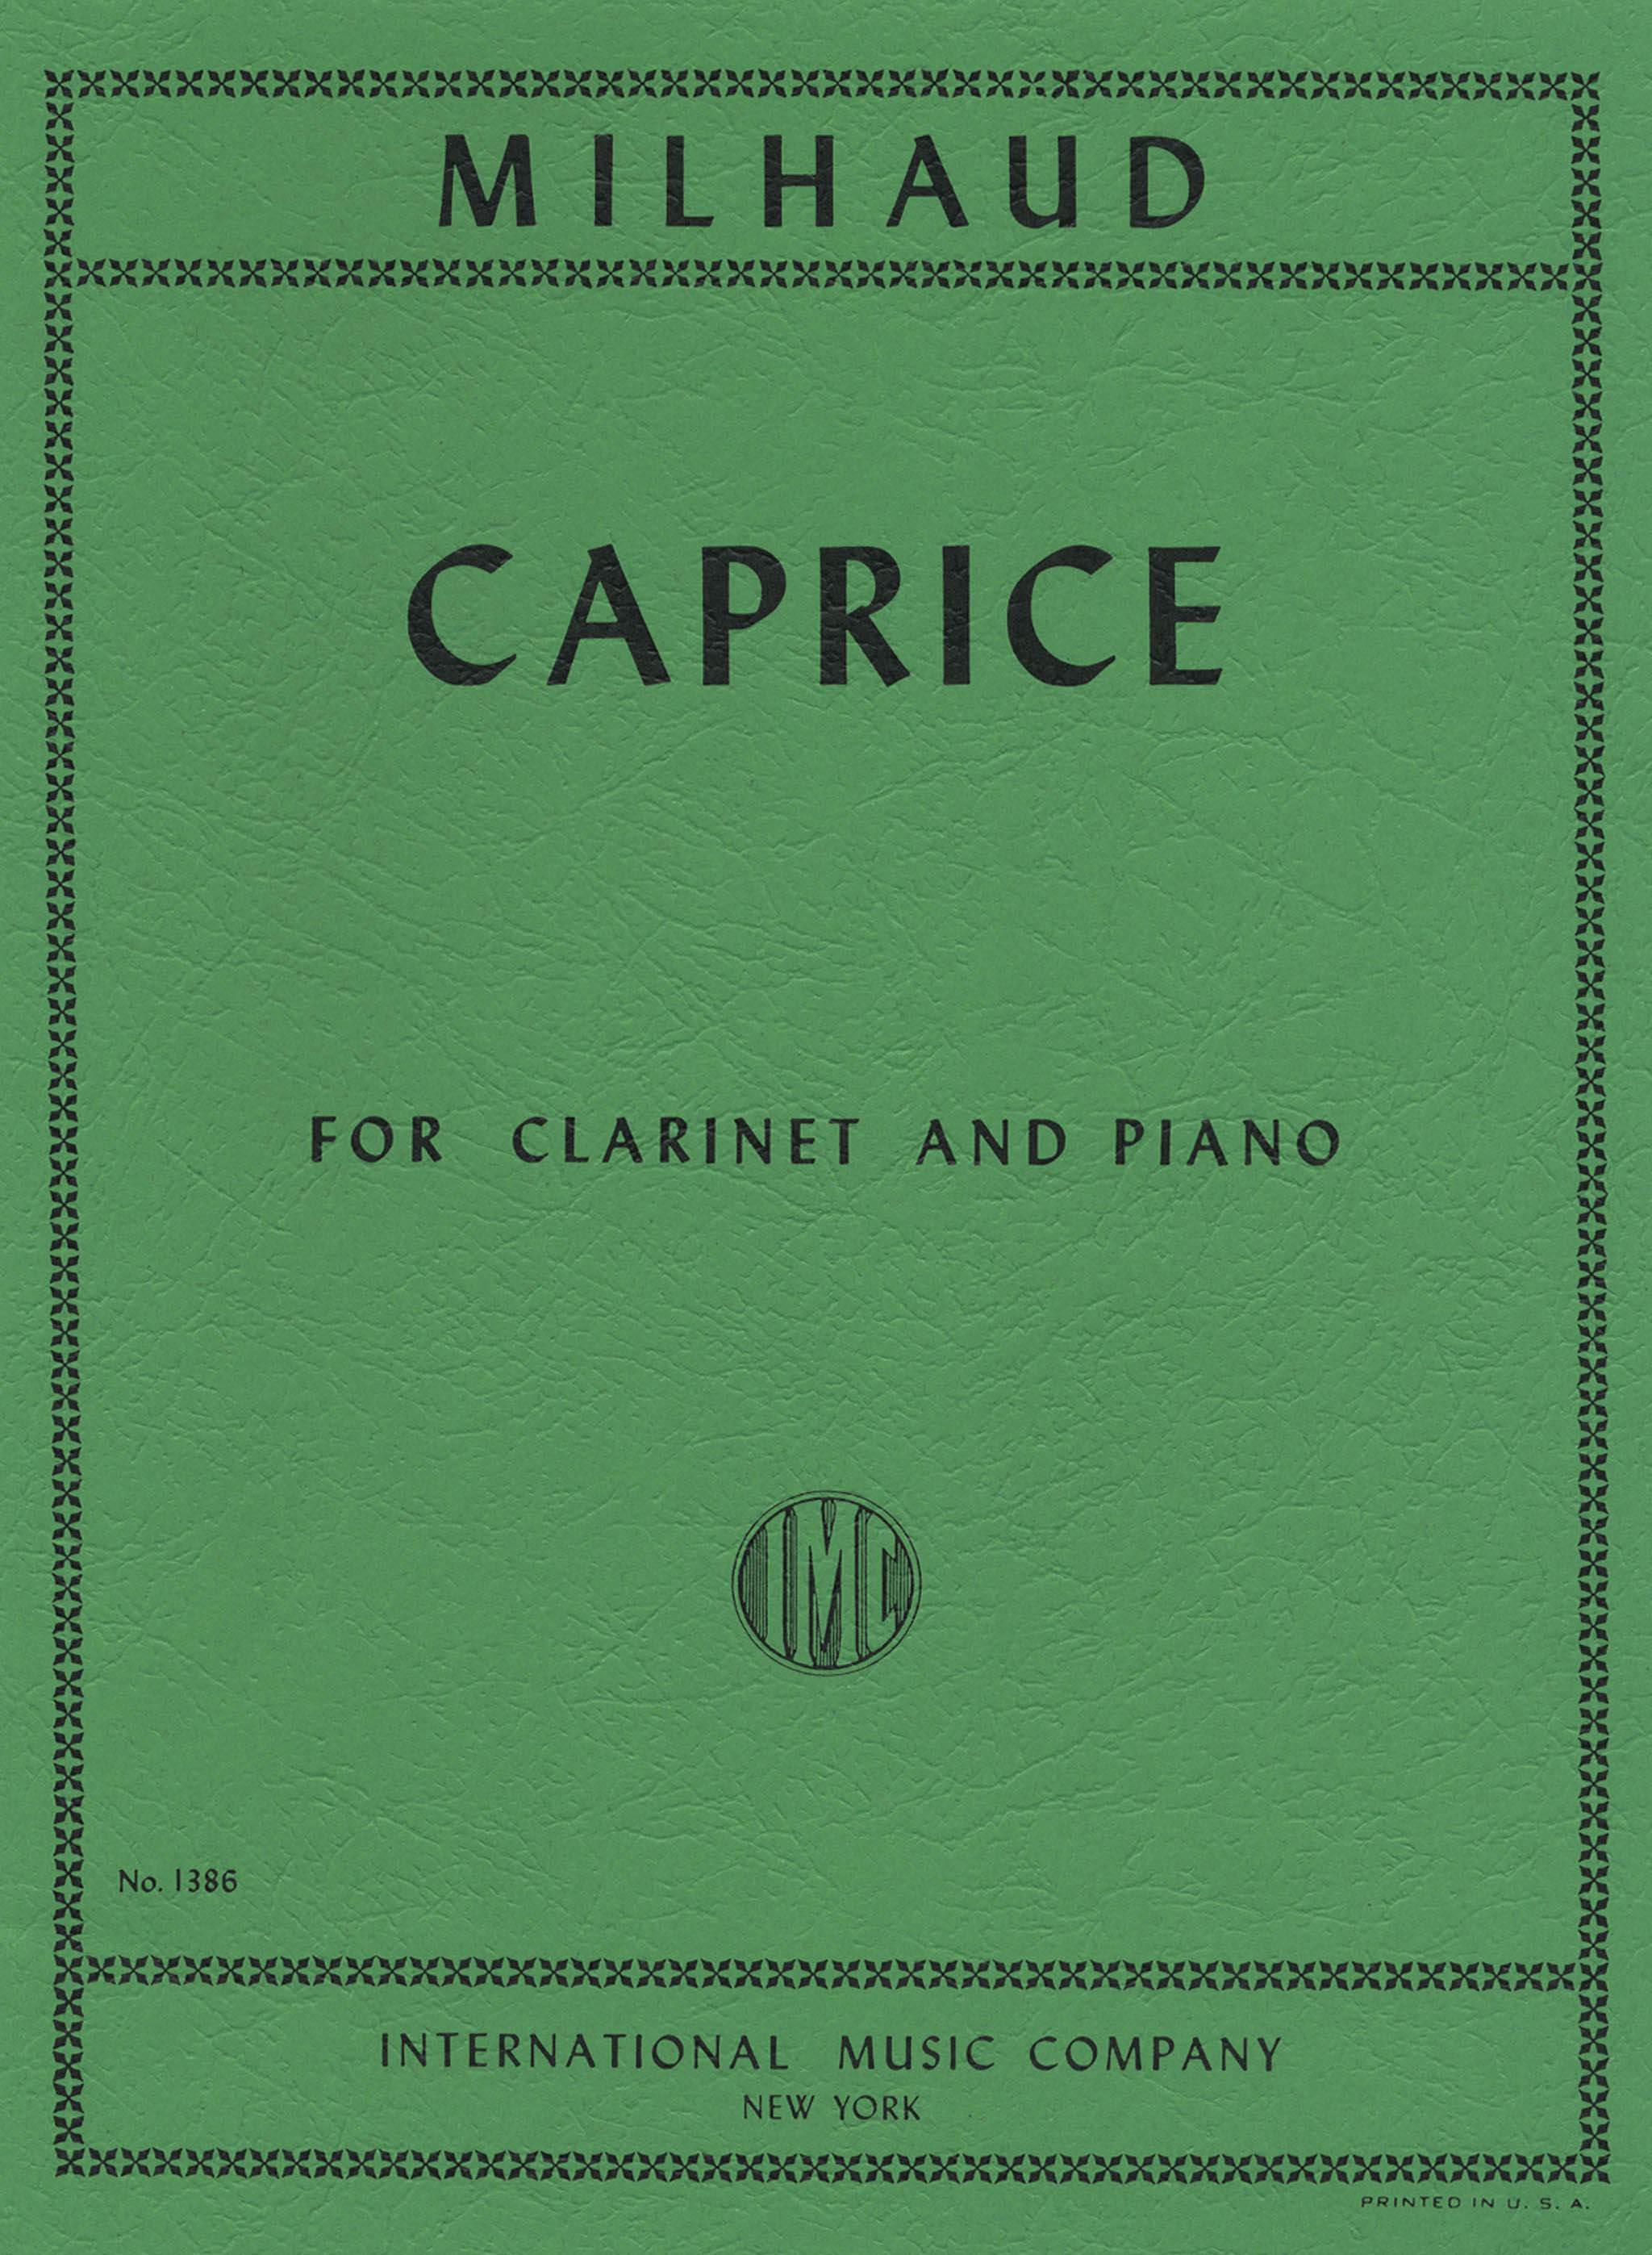 Milhaud Caprice, Op. 335 Cover